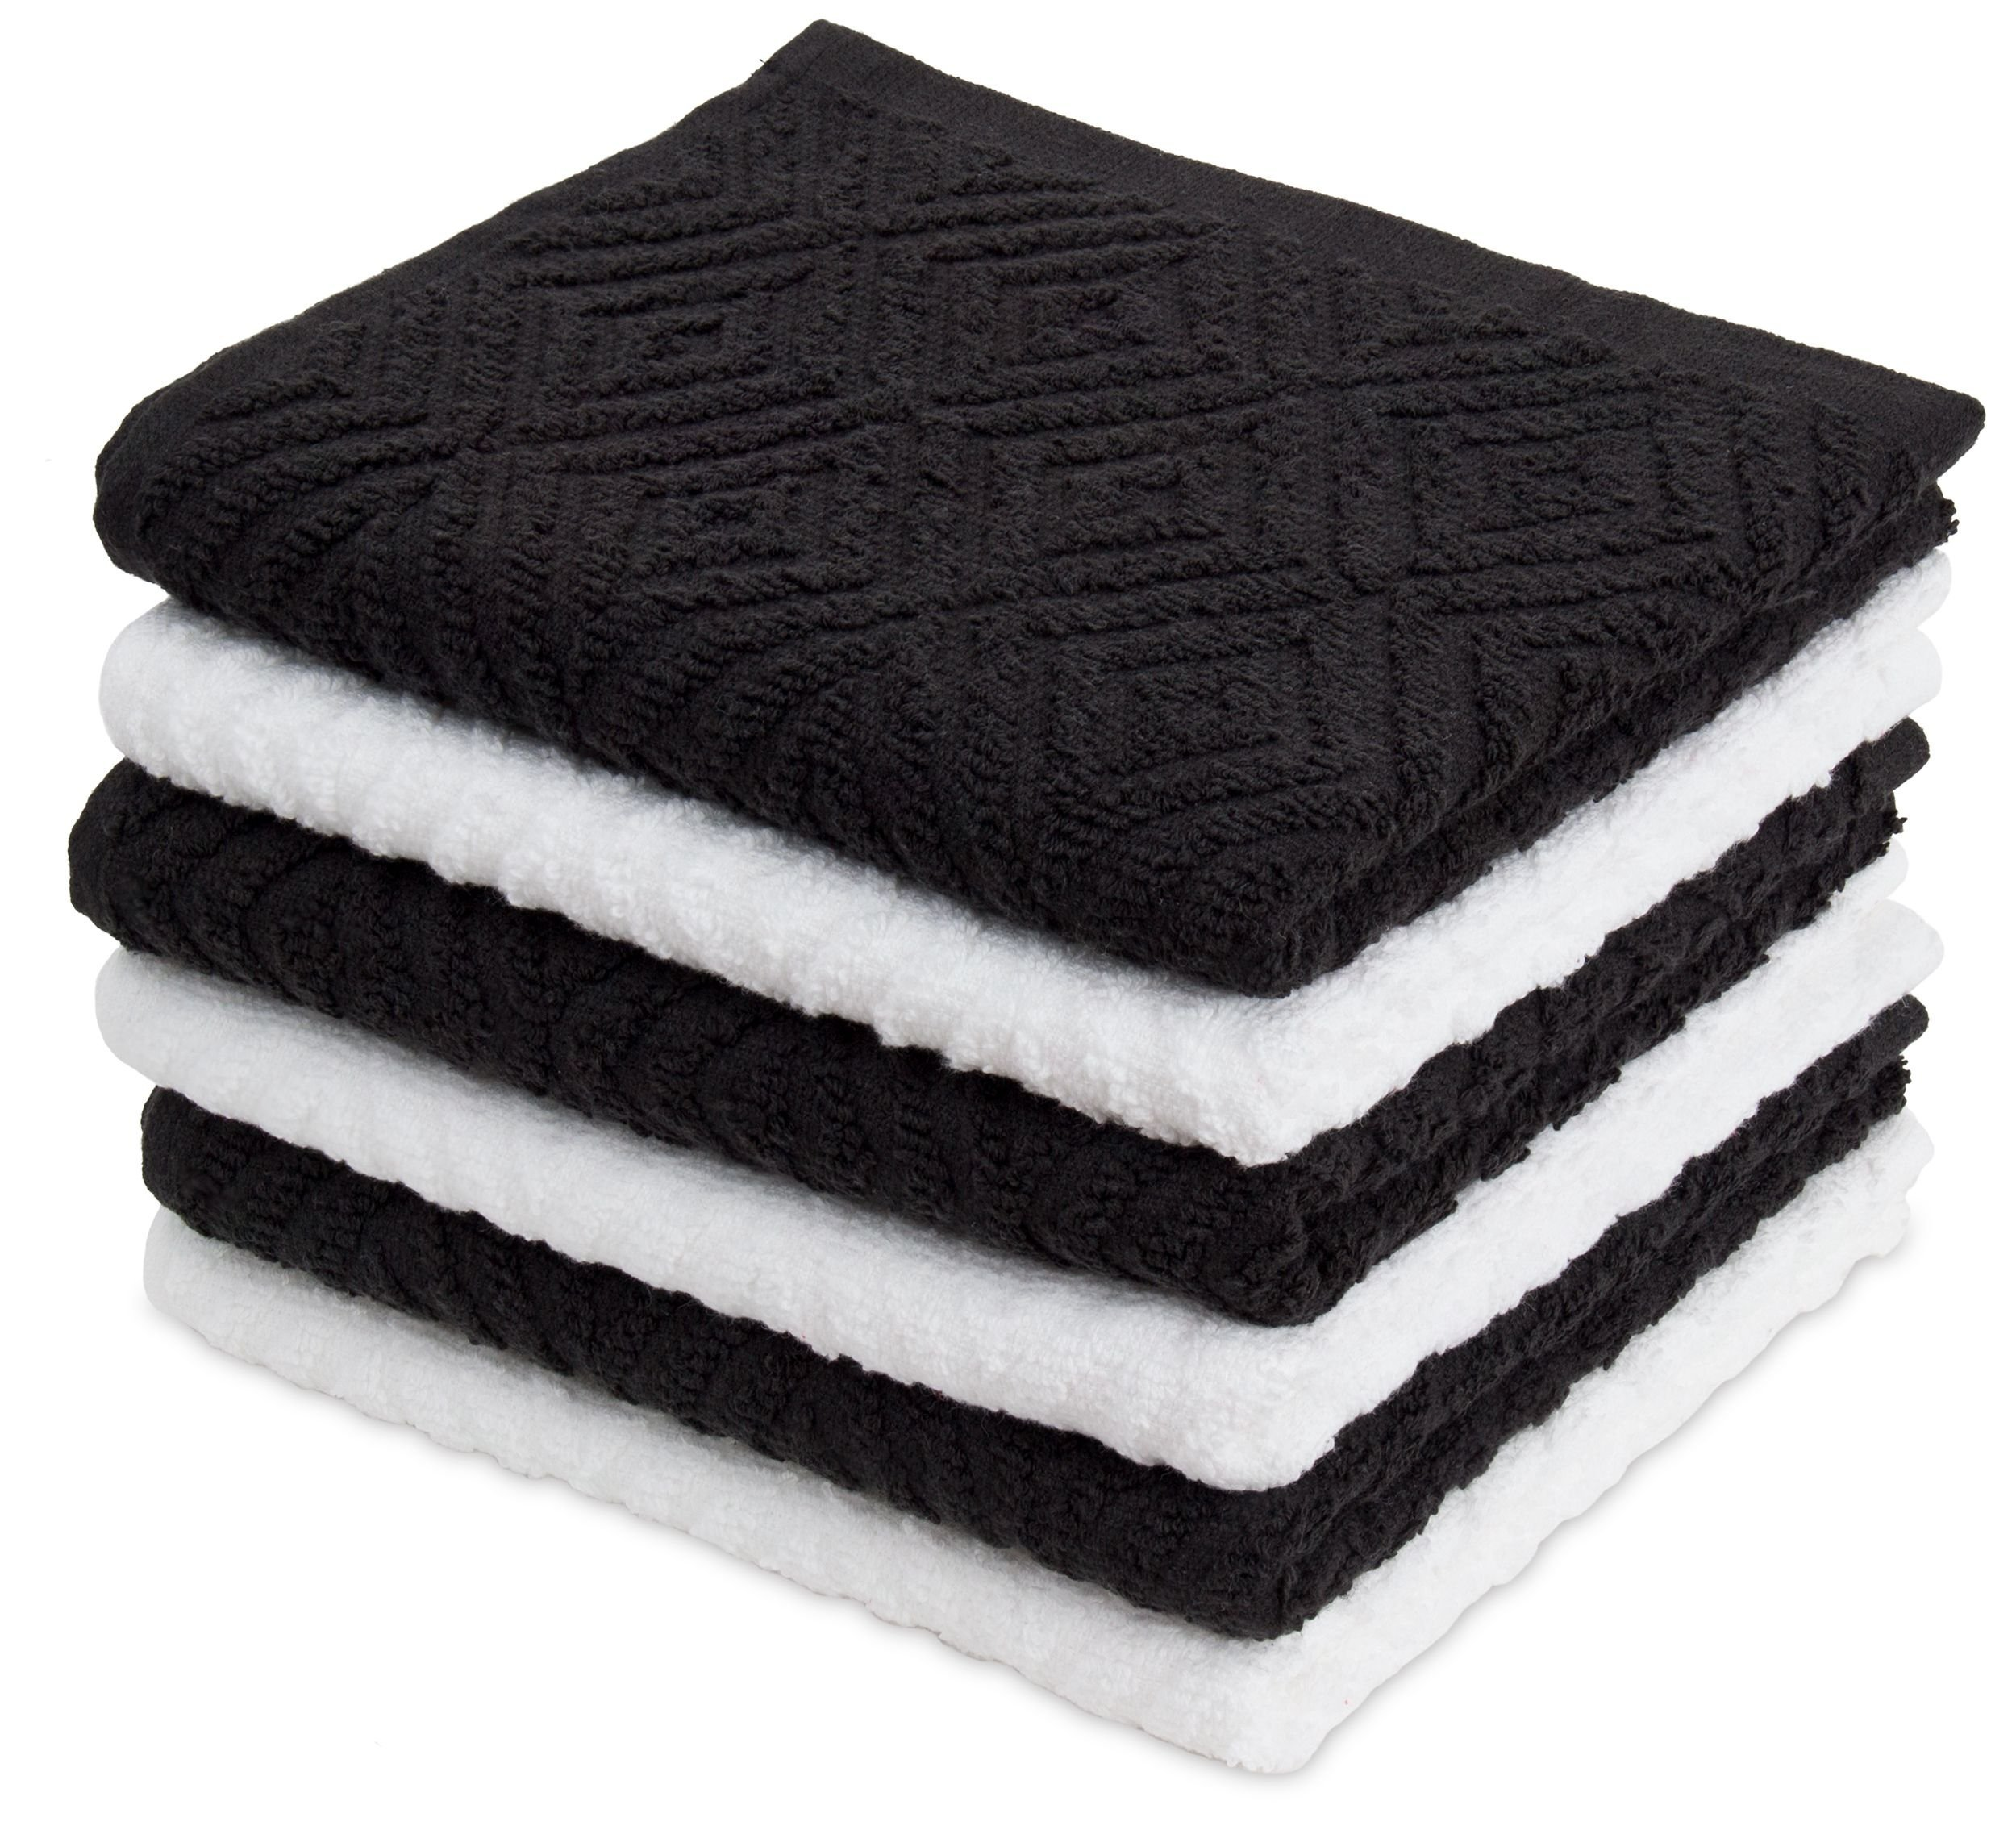 HomeCrate Diamond Super Absorbent 16'' x 26'' Kitchen Towels Dish Cloth, 100% Terry Cotton, Set of 6, Black & White